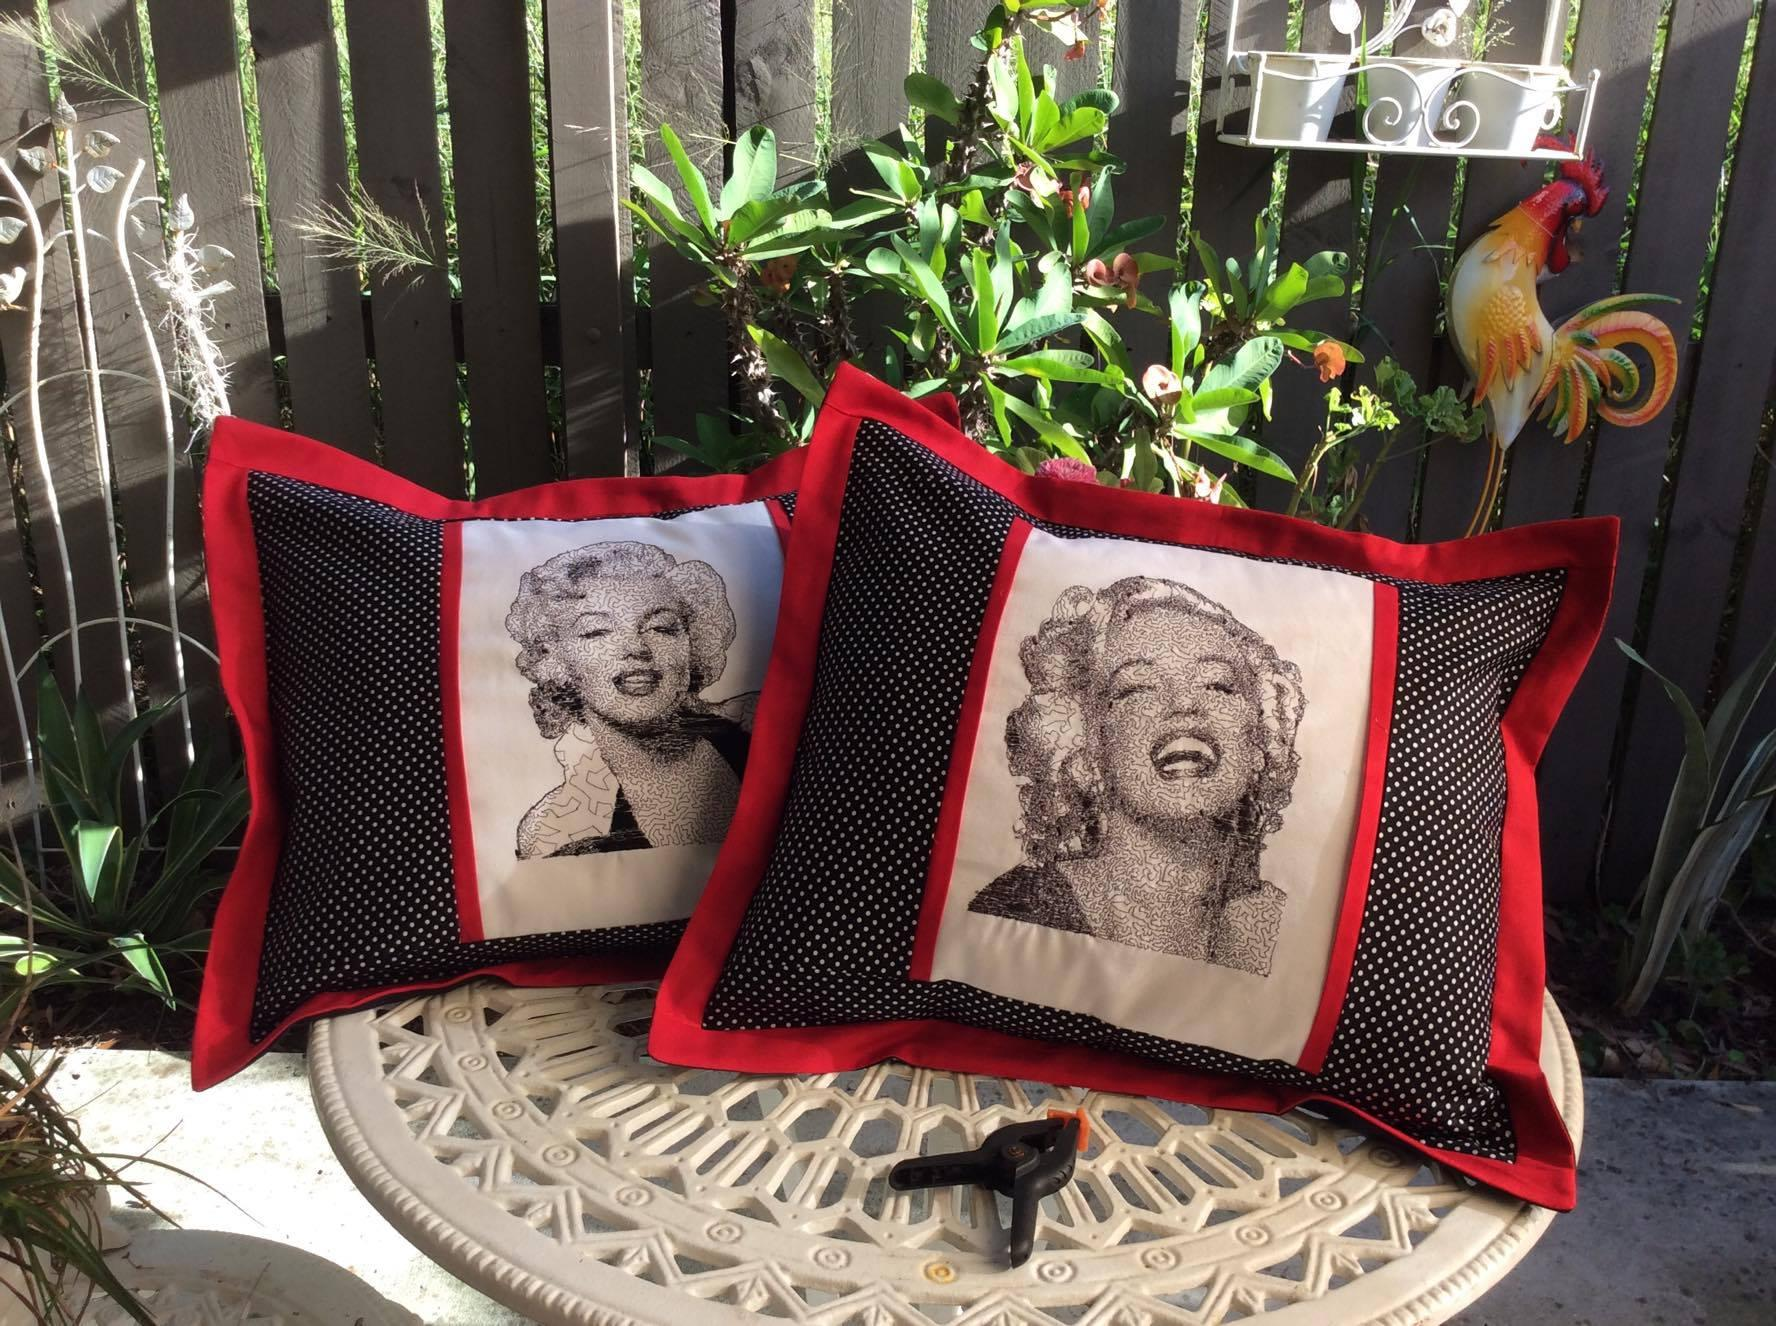 Two embroidered cushions with Marilyn Monroe free design